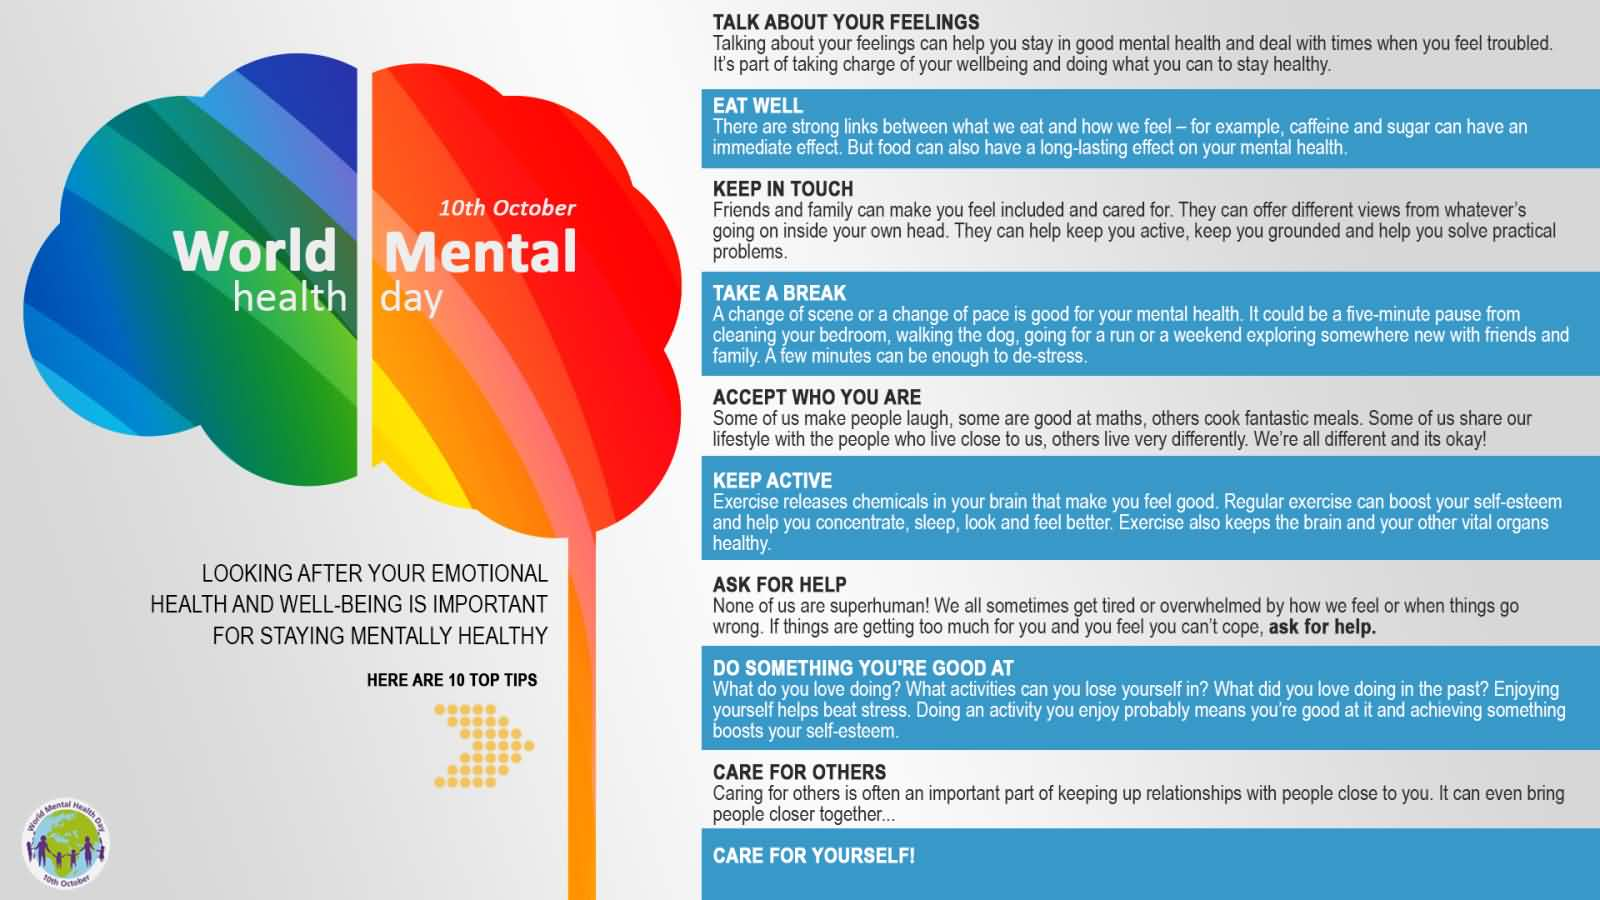 10th-October-World-Mental-Health-Day-Poster World Mental Health Day